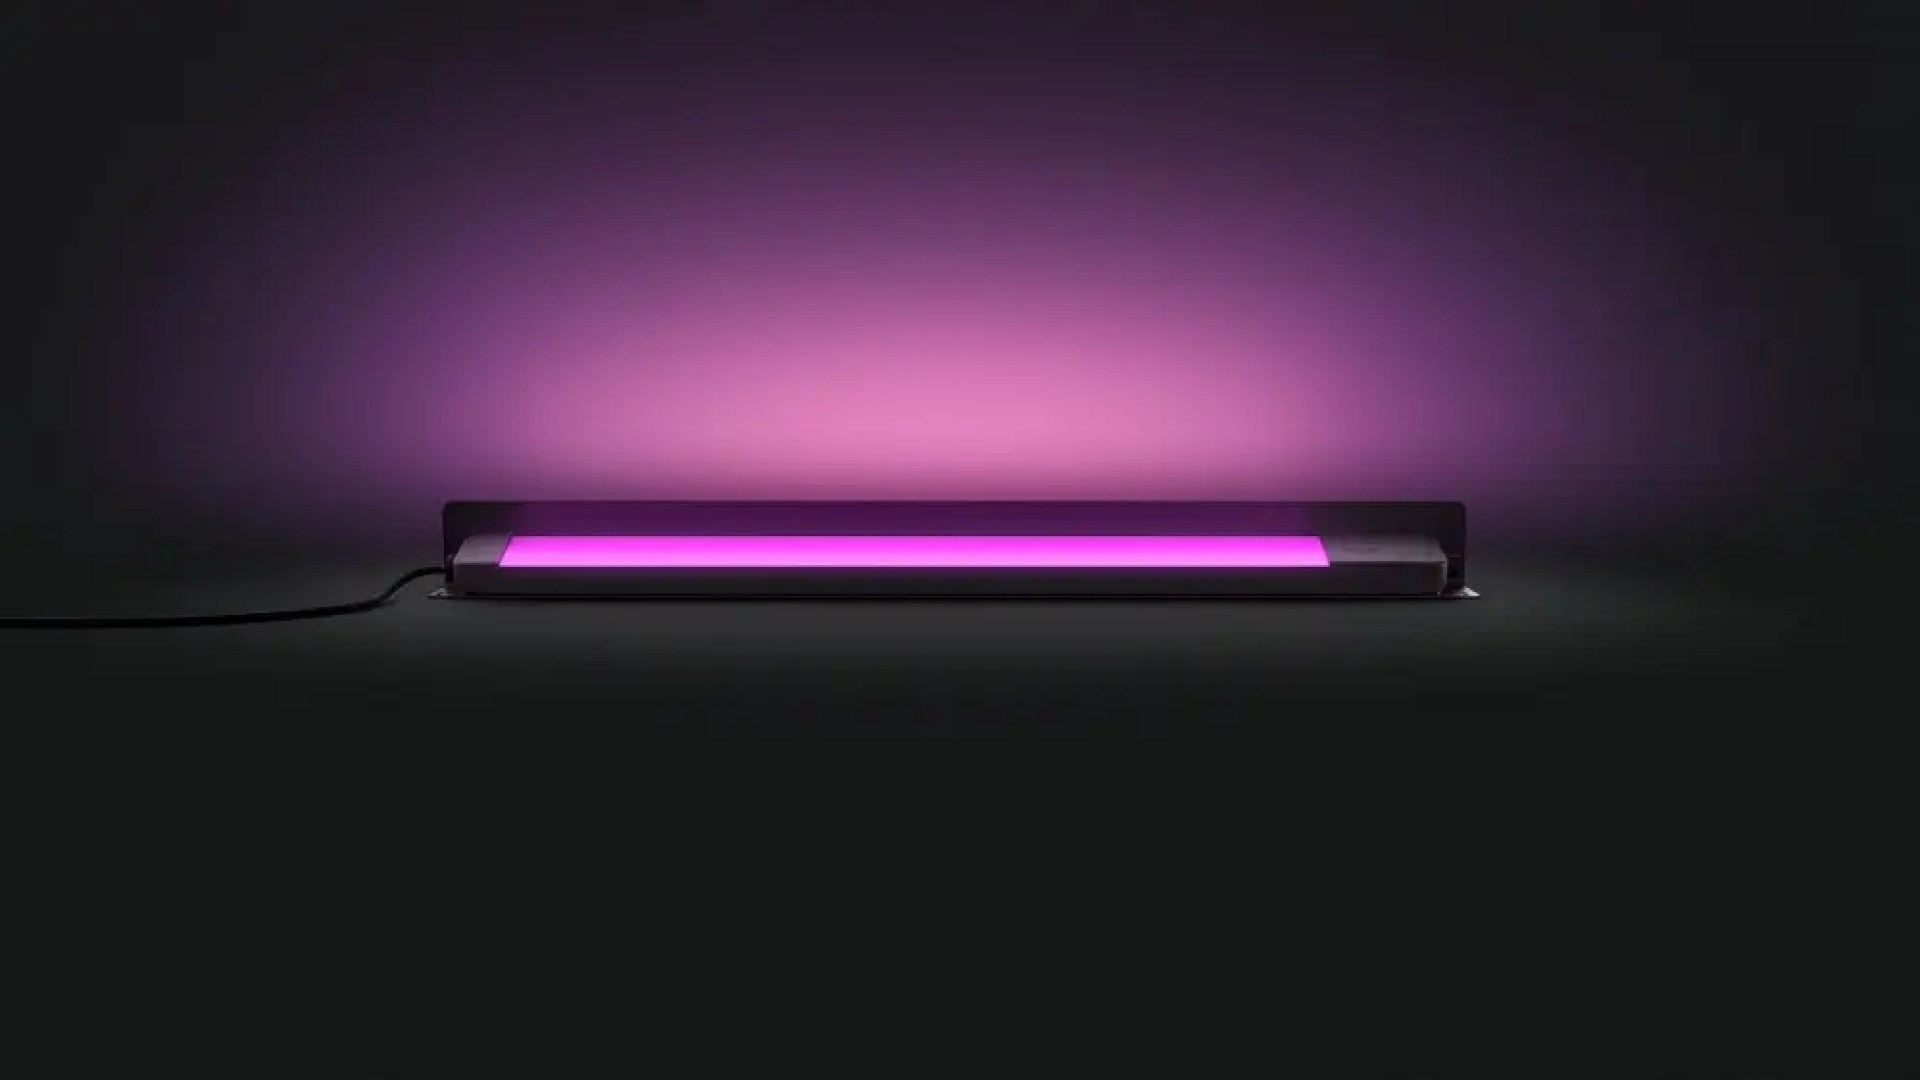 A light bar casting off purple light.